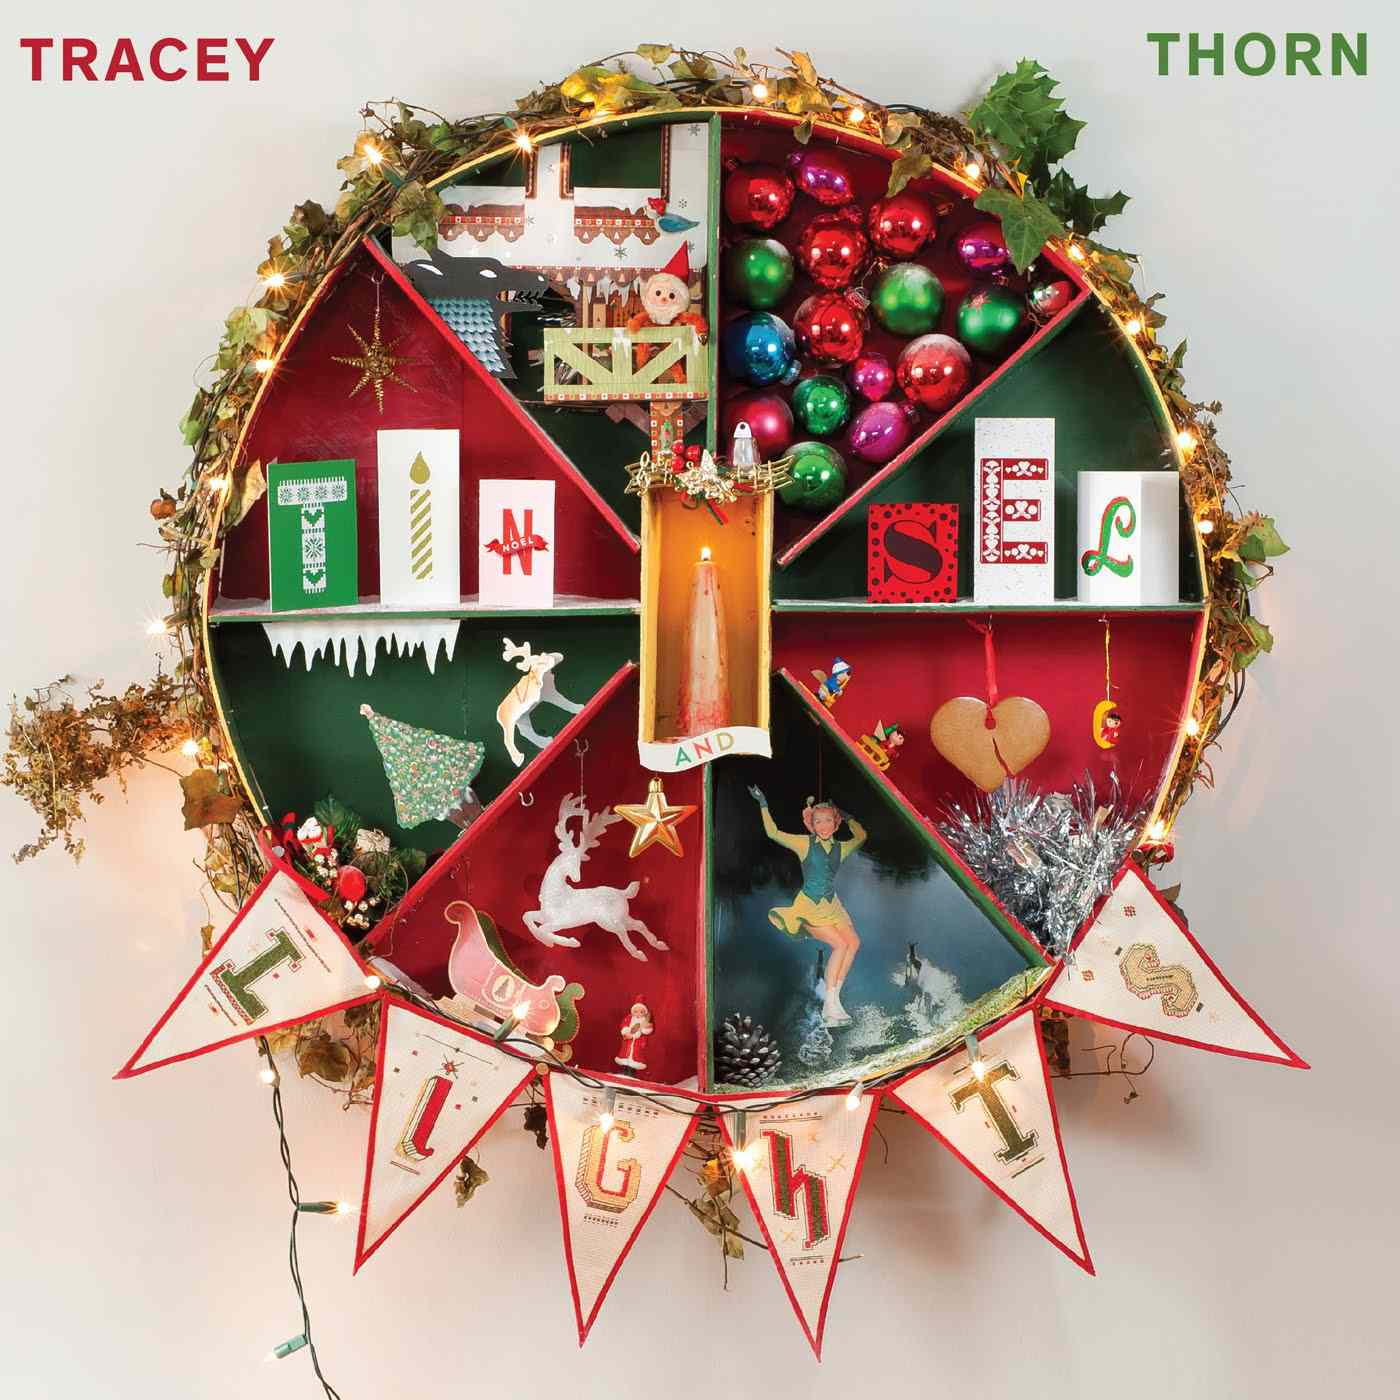 Tracey Thorn 'Tinsel and Lights'